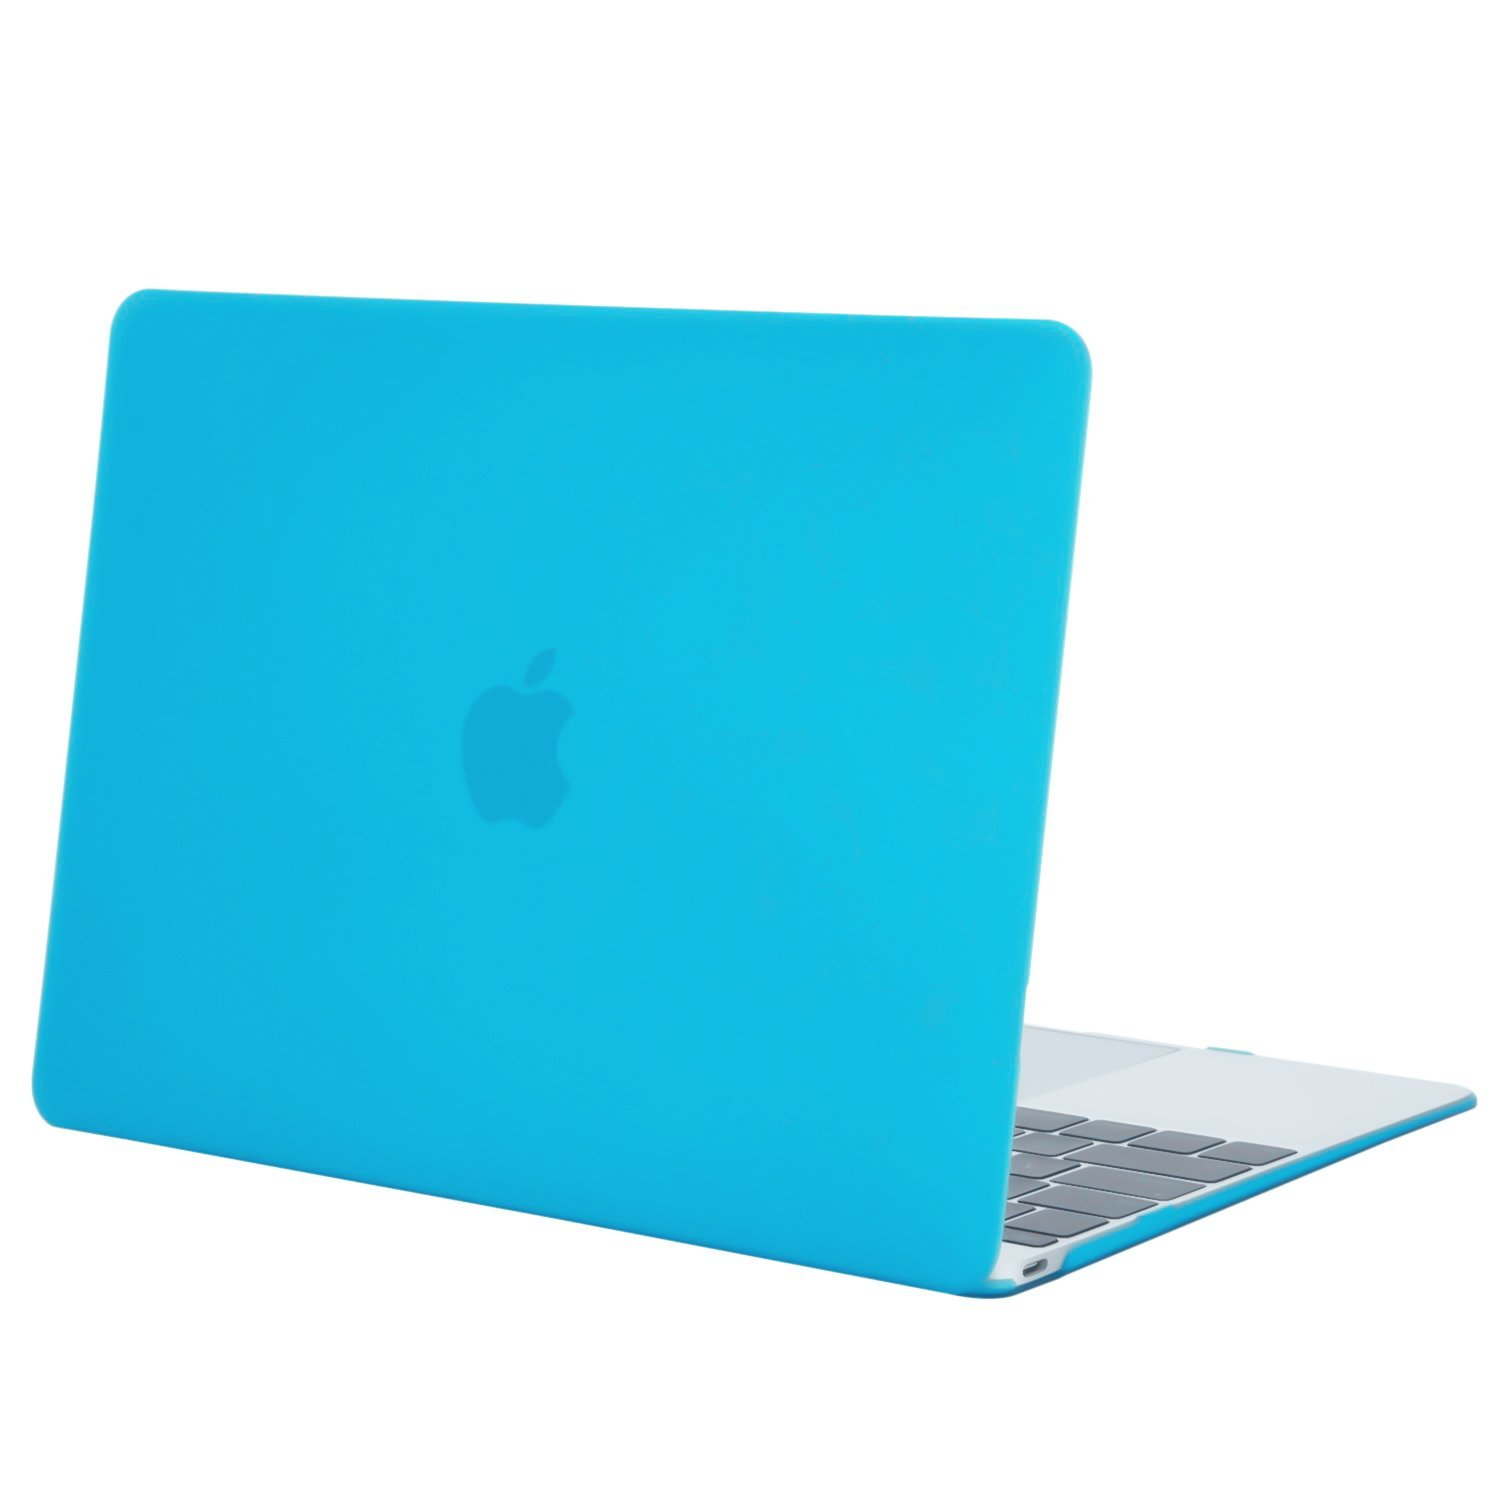 "CODEGEN 12"" MACBOOK SERT KILIF MAVİ CM-120LB"